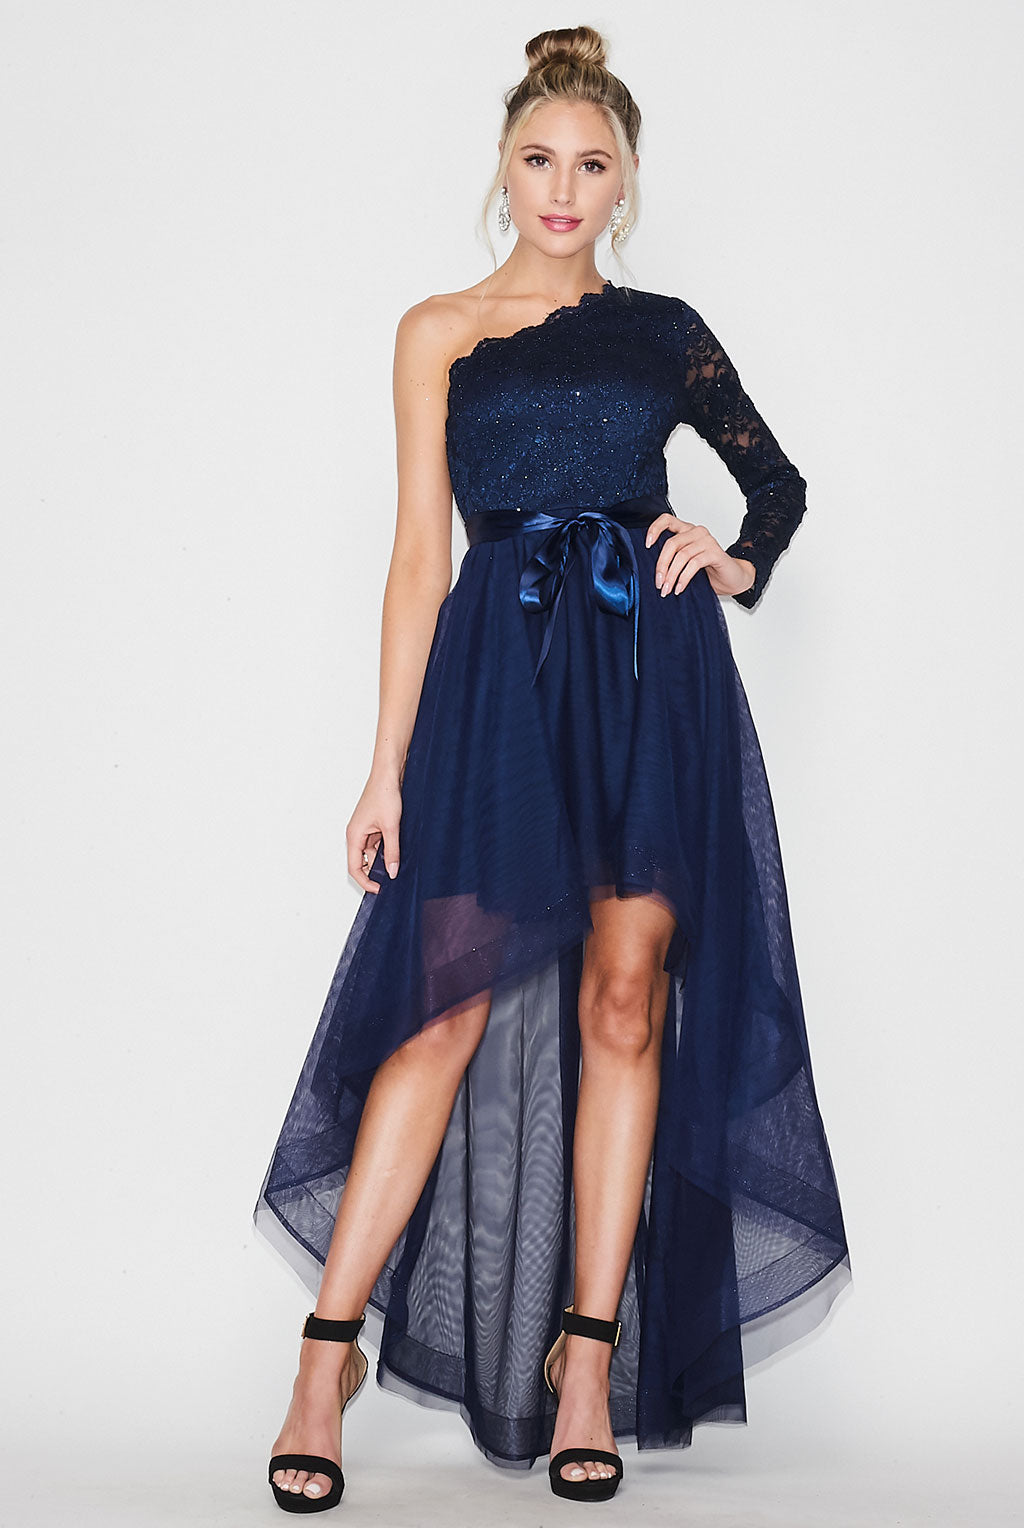 Teeze Me | One Shoulder Long Sleeve High Low Dress Prom | Navy